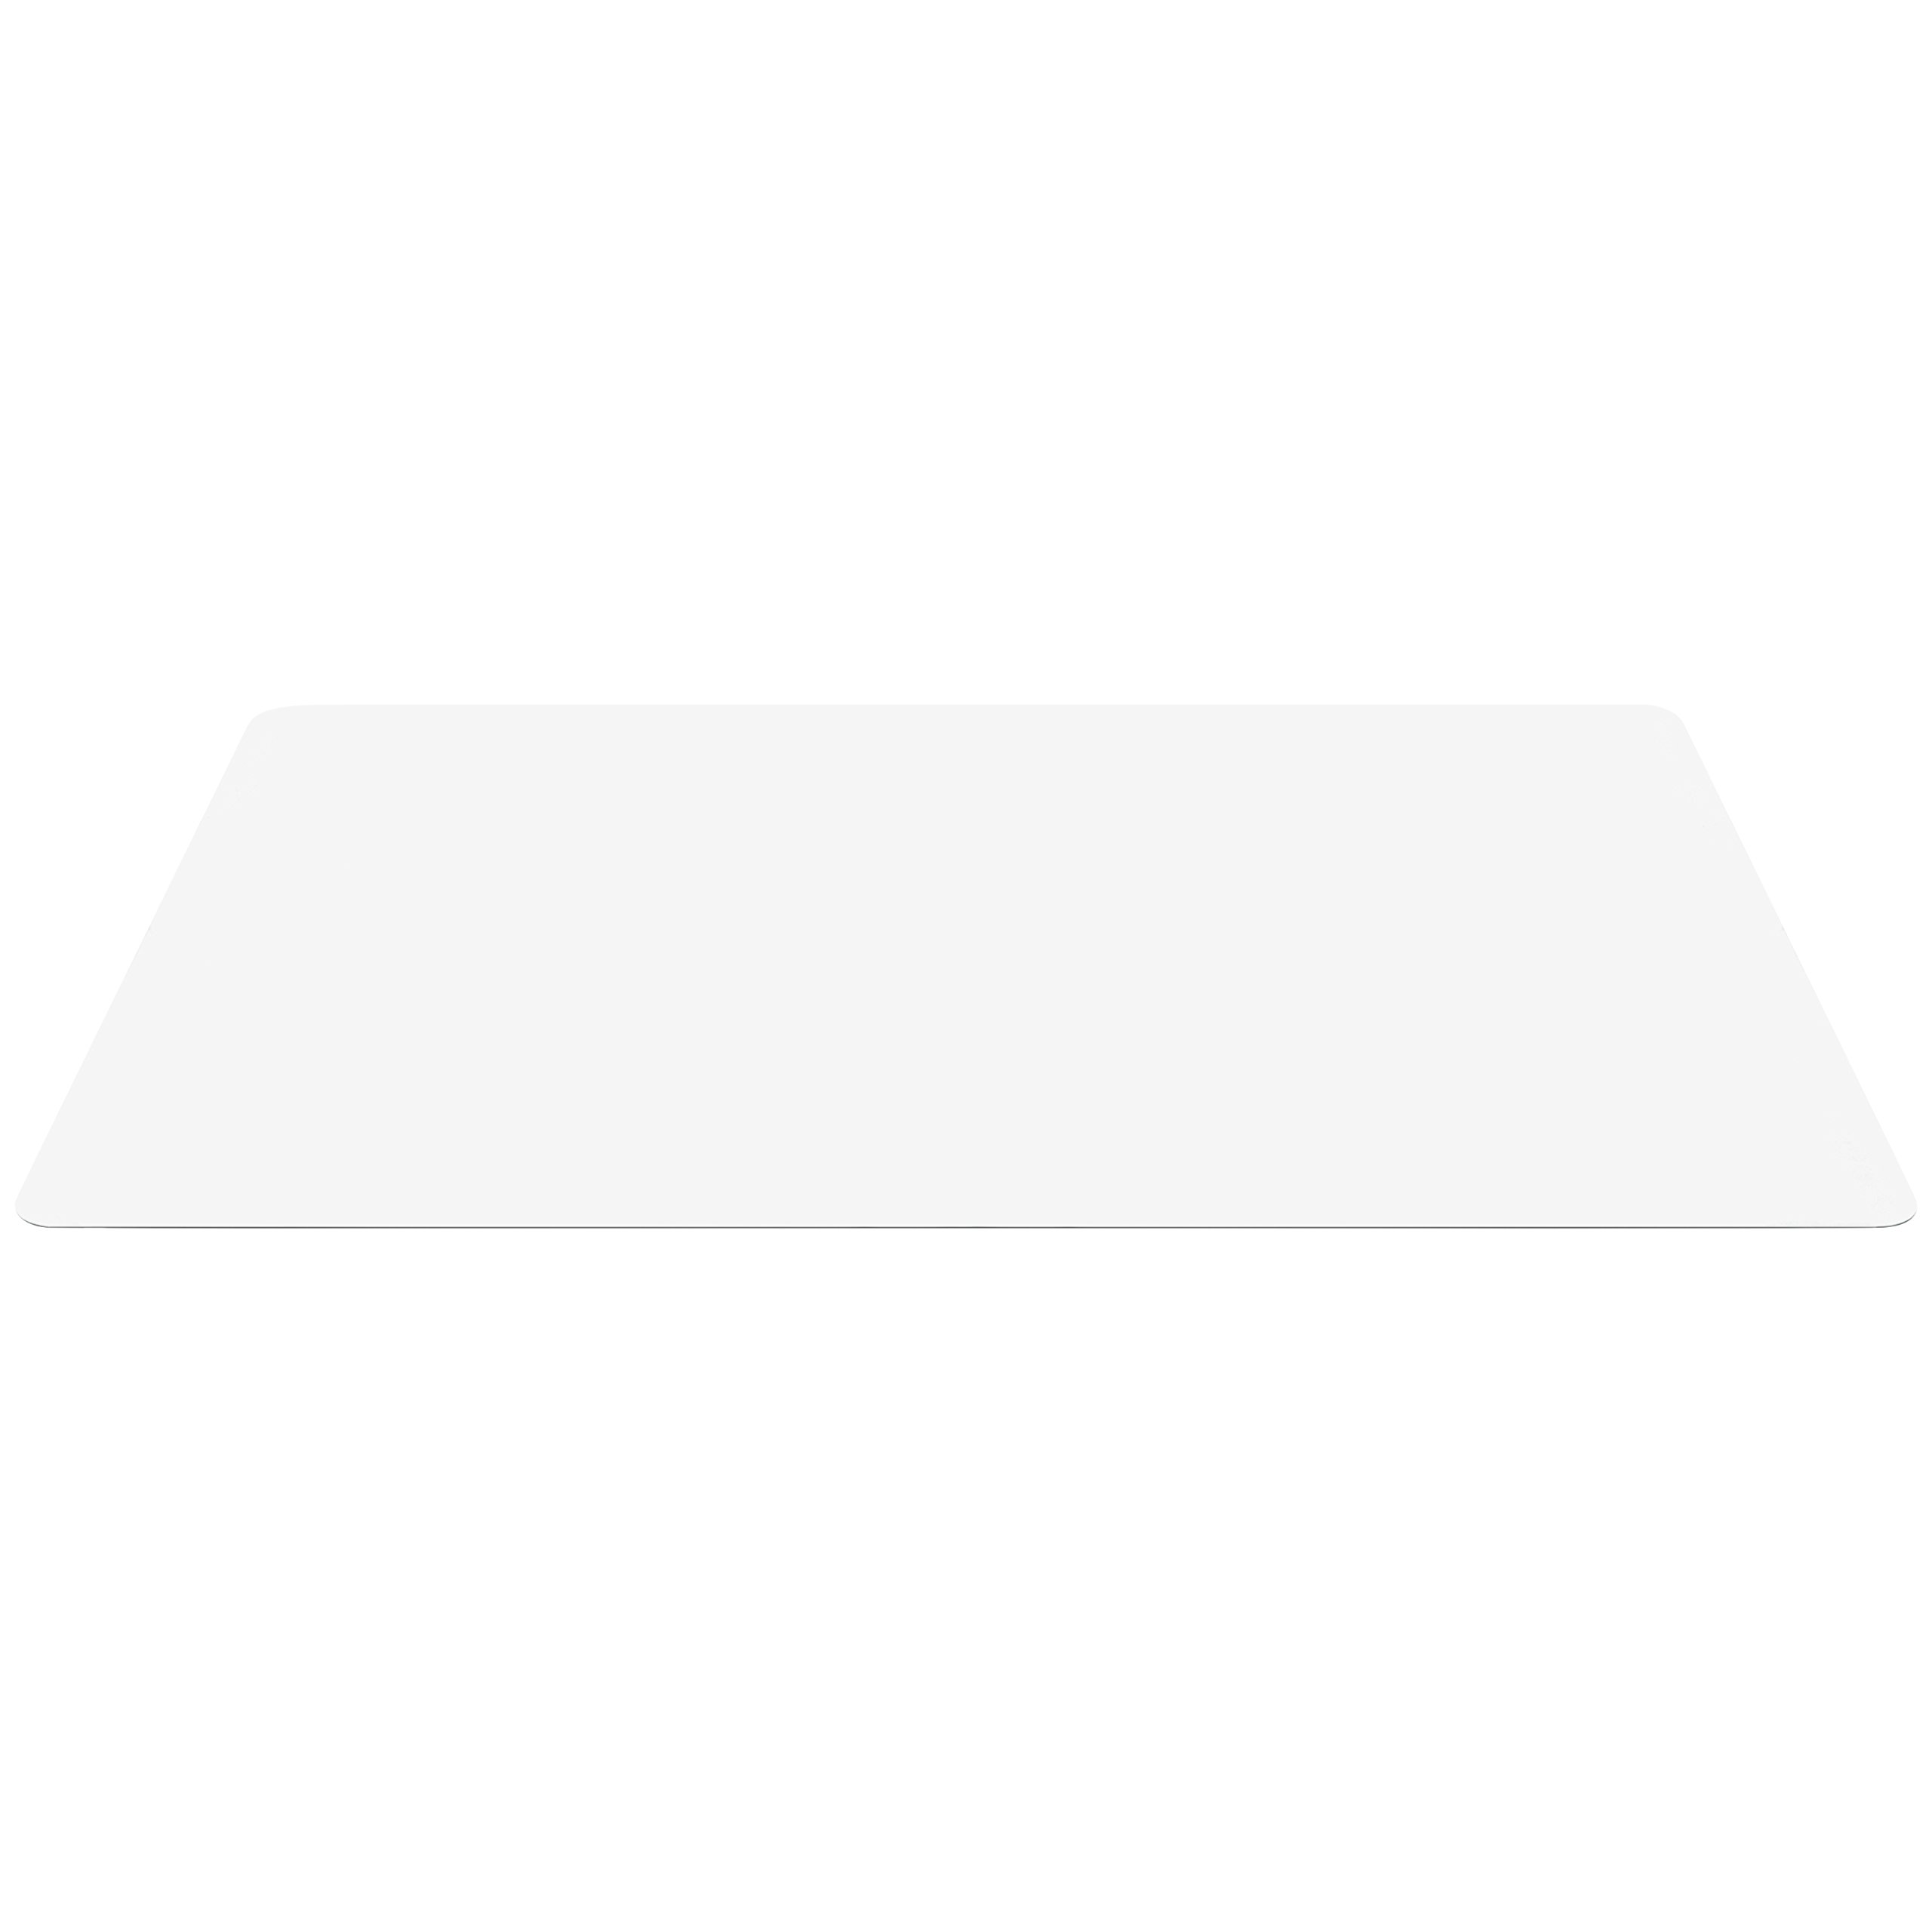 Best Choice Products 47x59in PVC Multi-Purpose Chair Floor Mat Hardwood Protector for Scratch, Scuff, Marking Protection, Clear by Best Choice Products